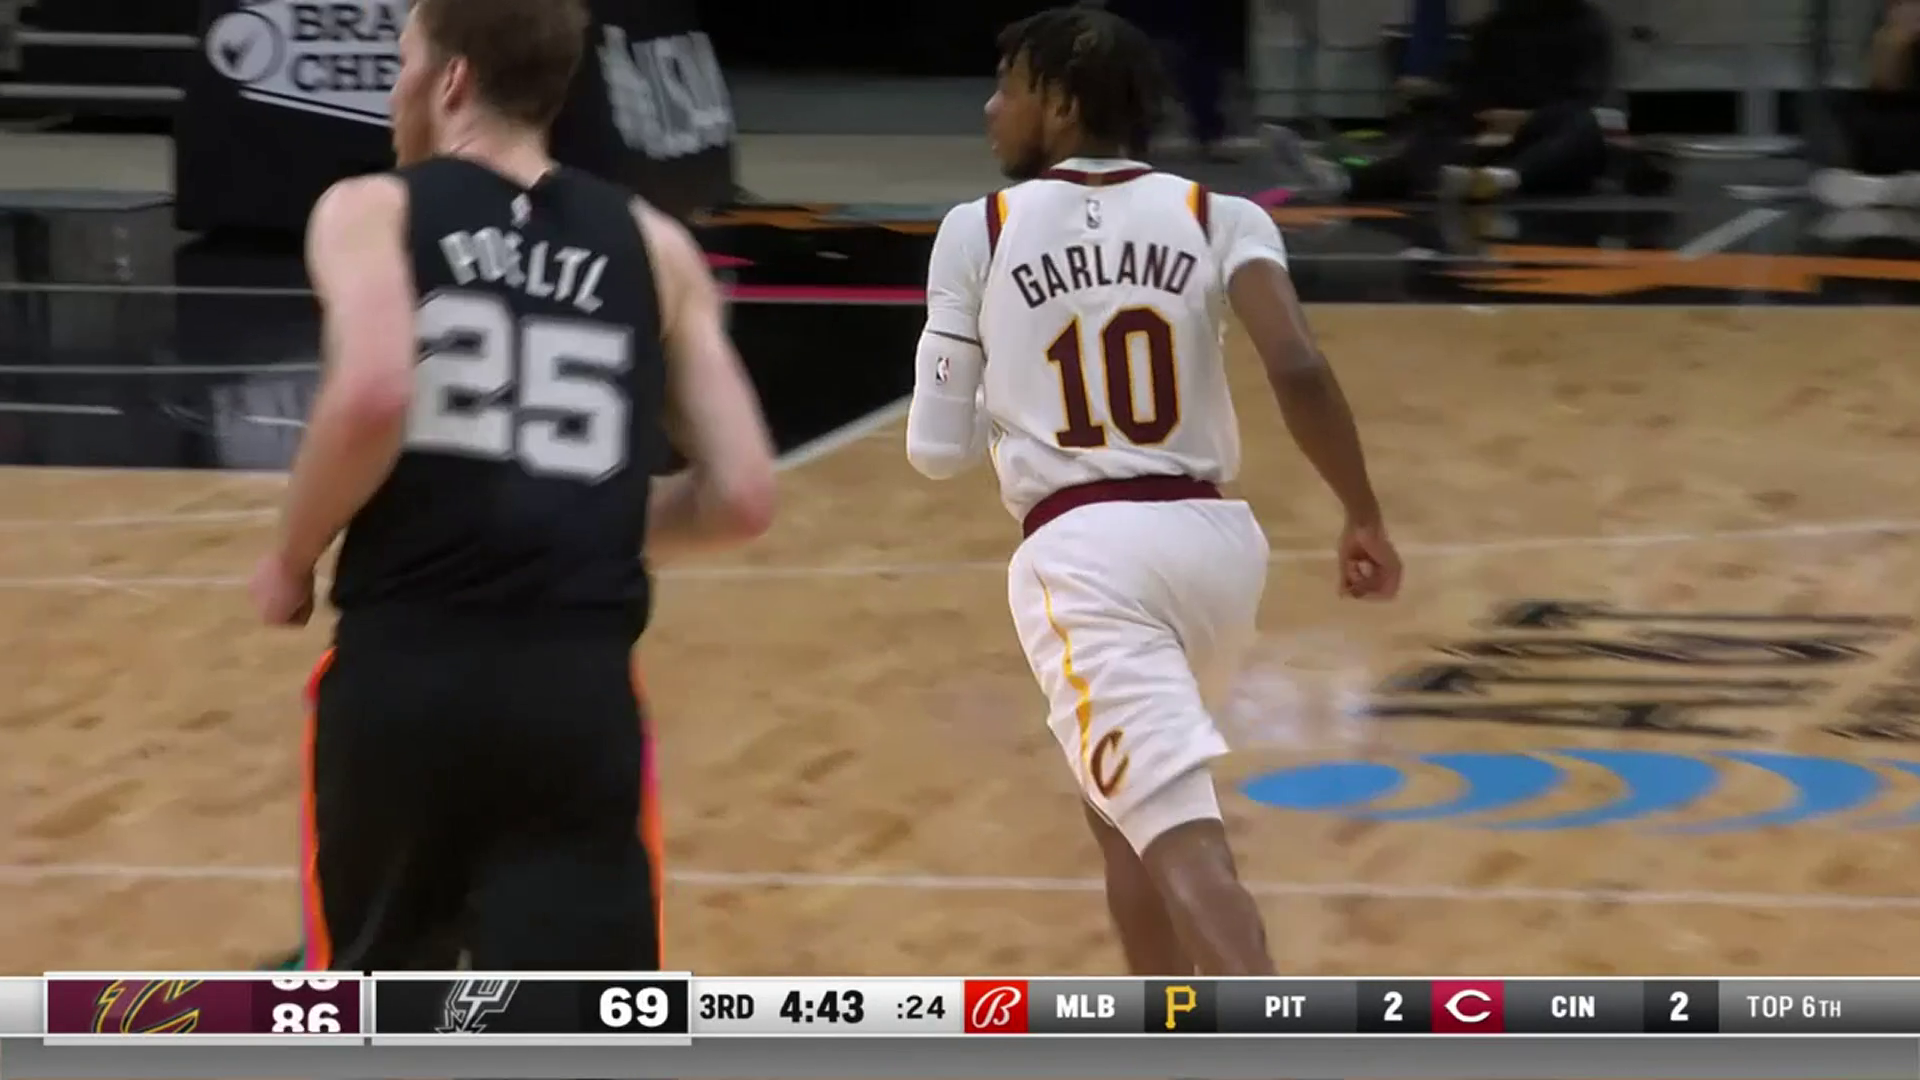 Garland with a pair of Triples for New Career-High